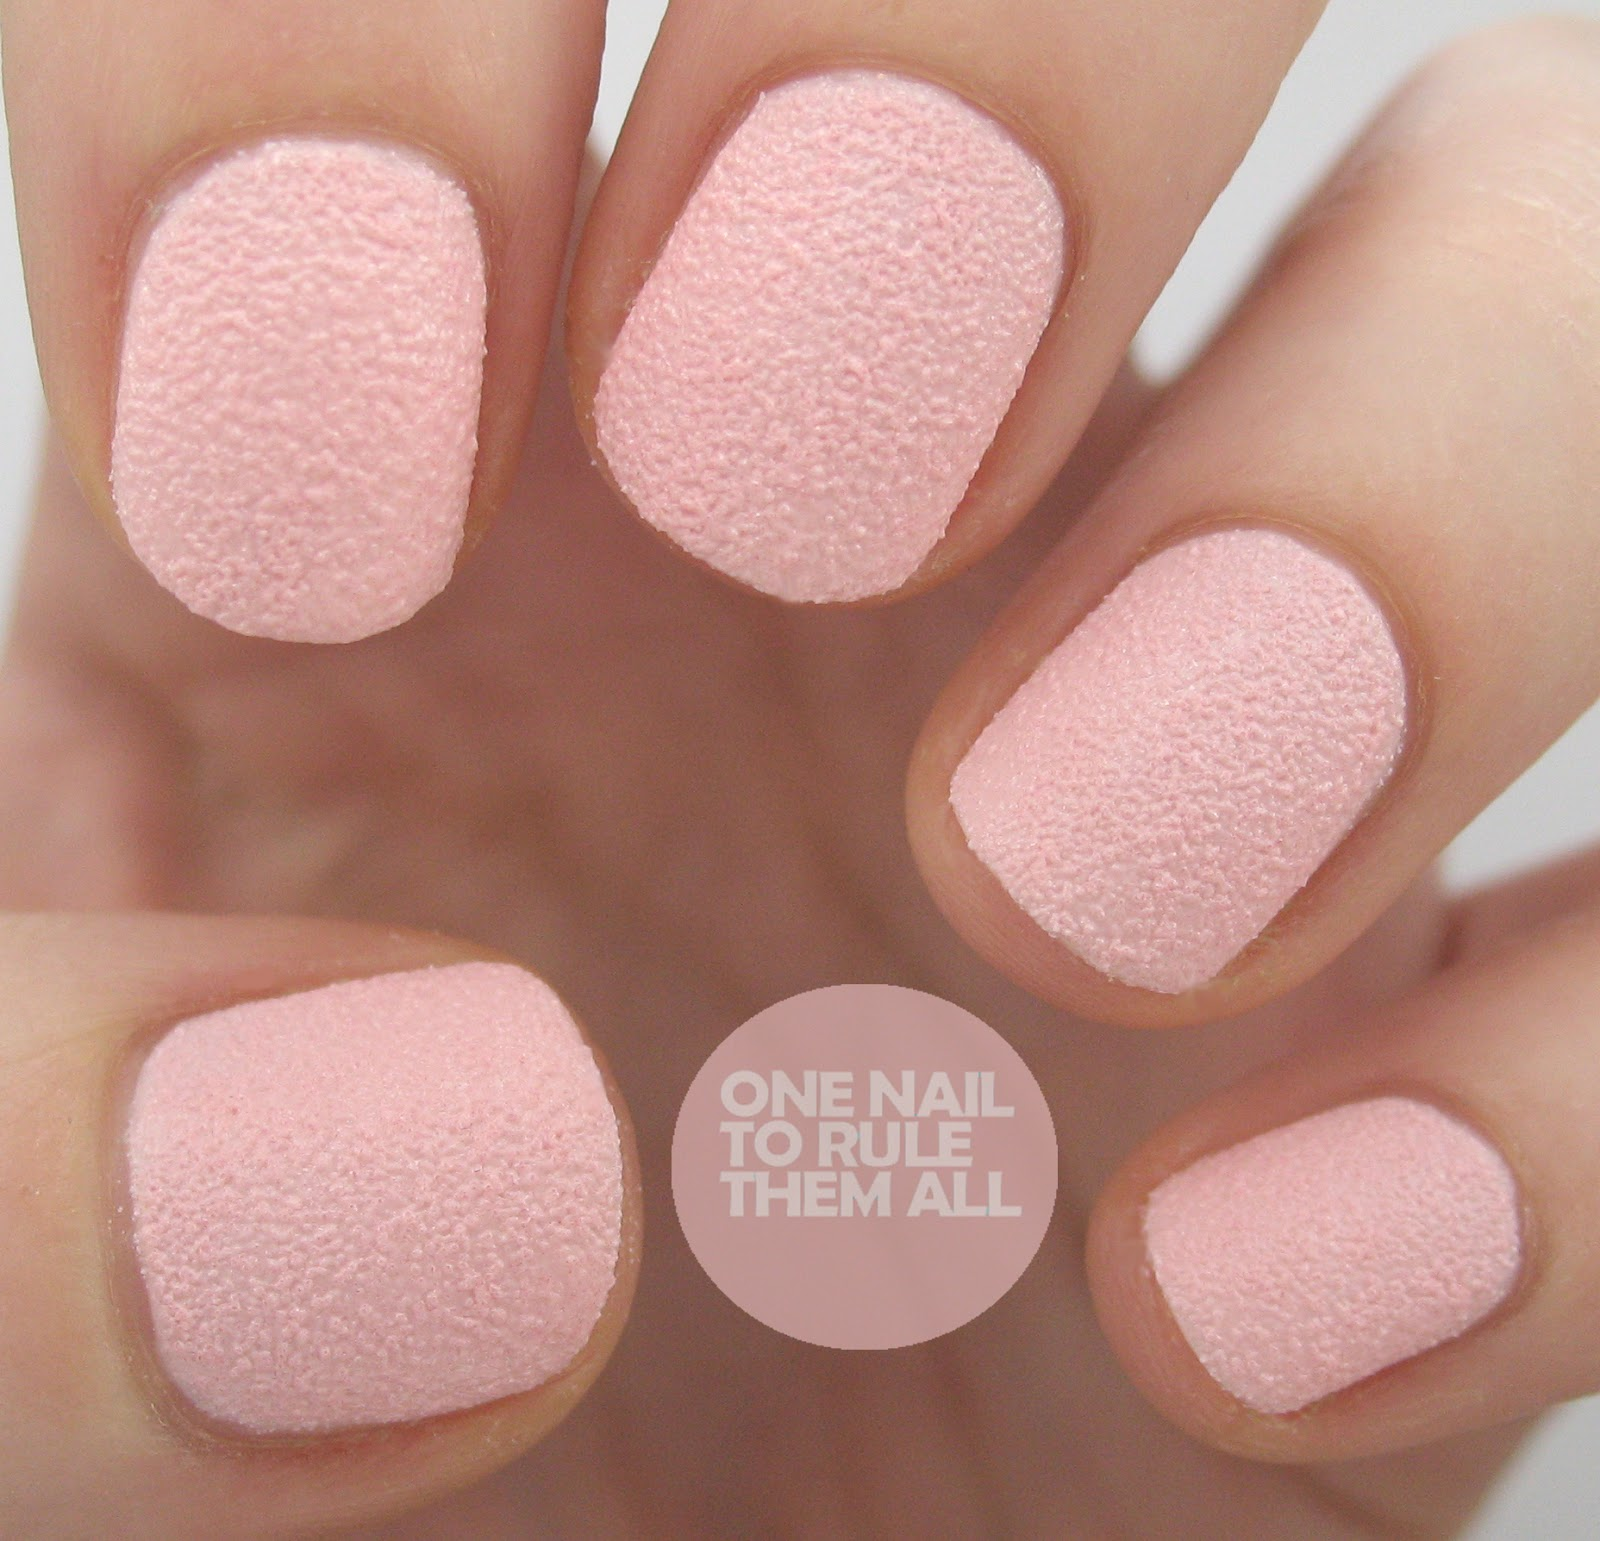 One Nail To Rule Them All: New Barry M Textured Nail